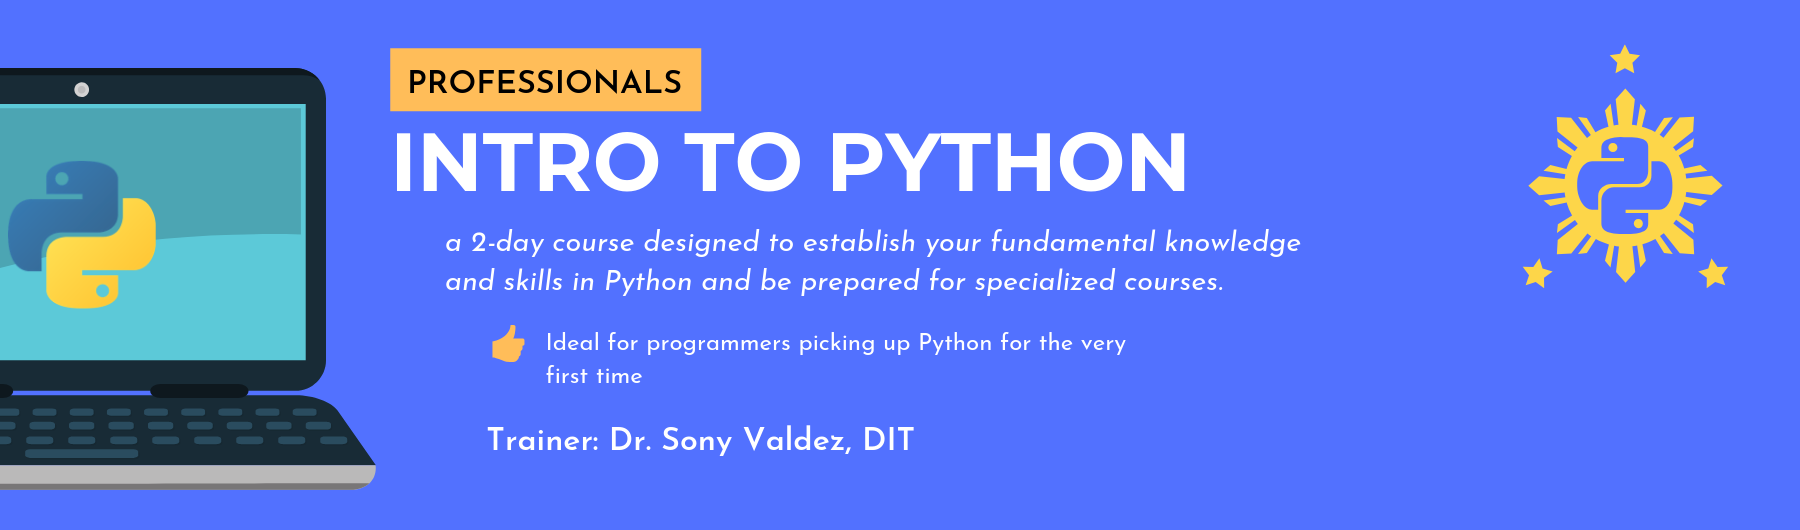 Intro to Python for Professionals